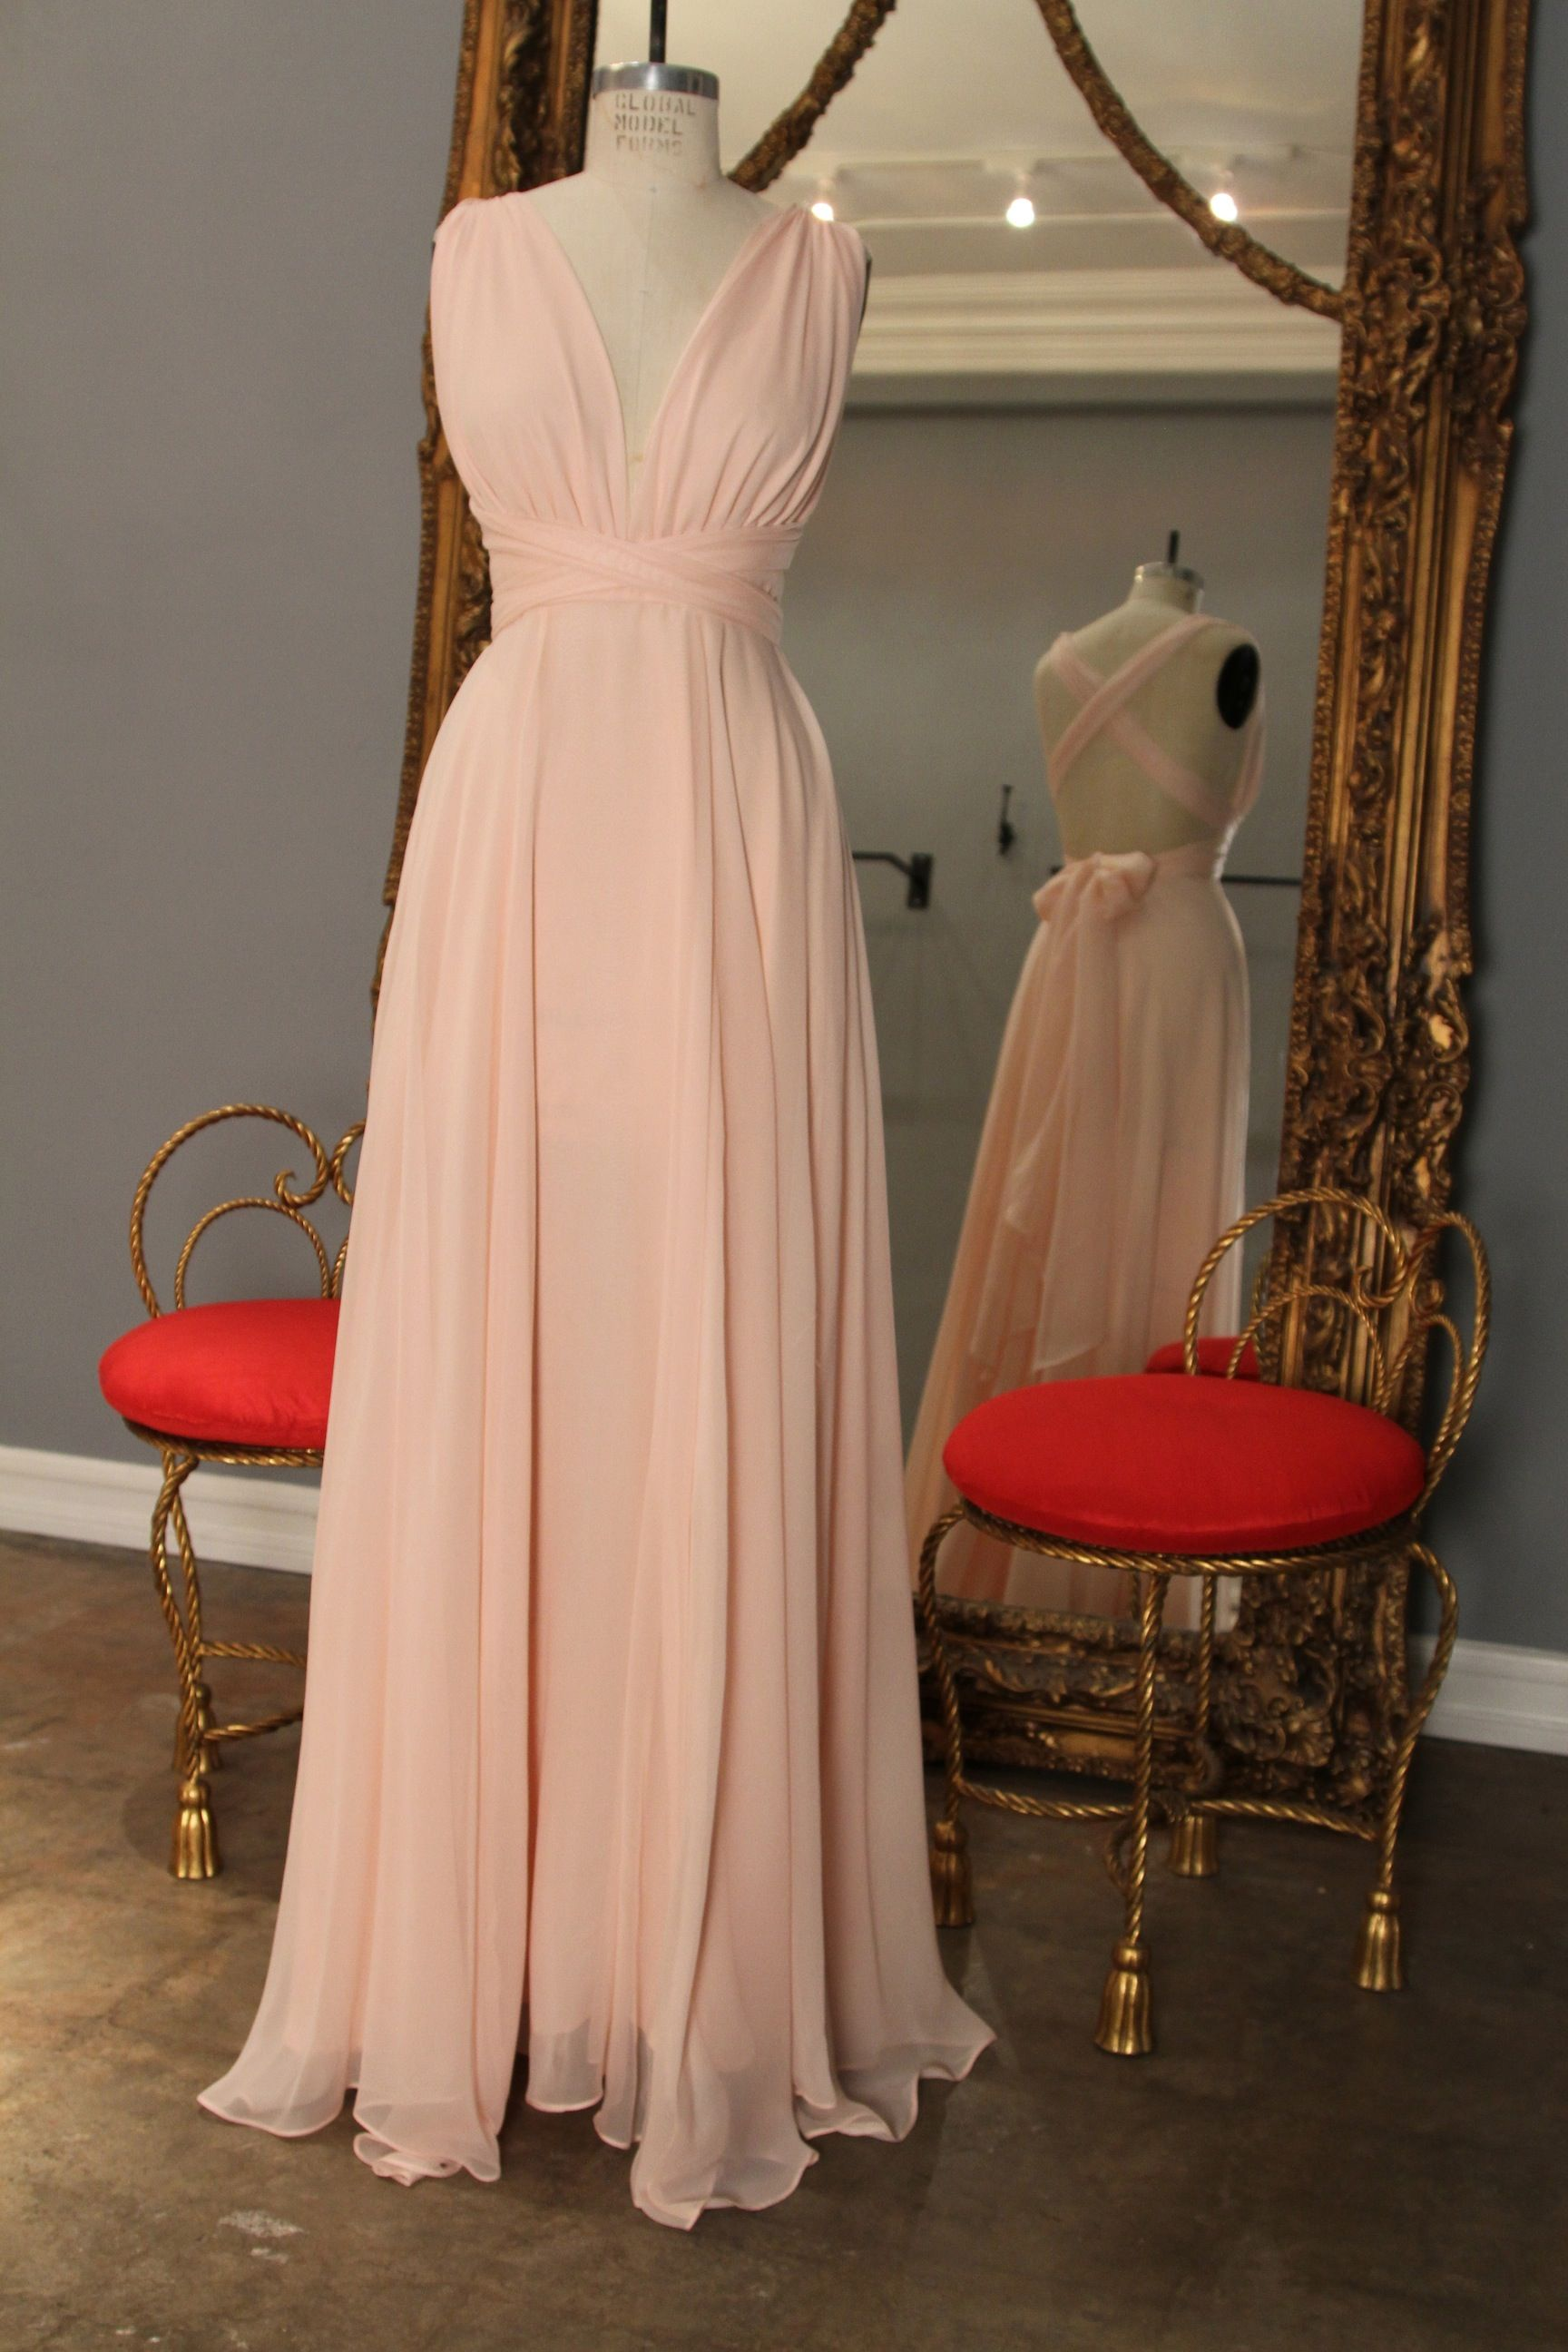 Beautiful brides maid dress maybe even a simple wedding dress a